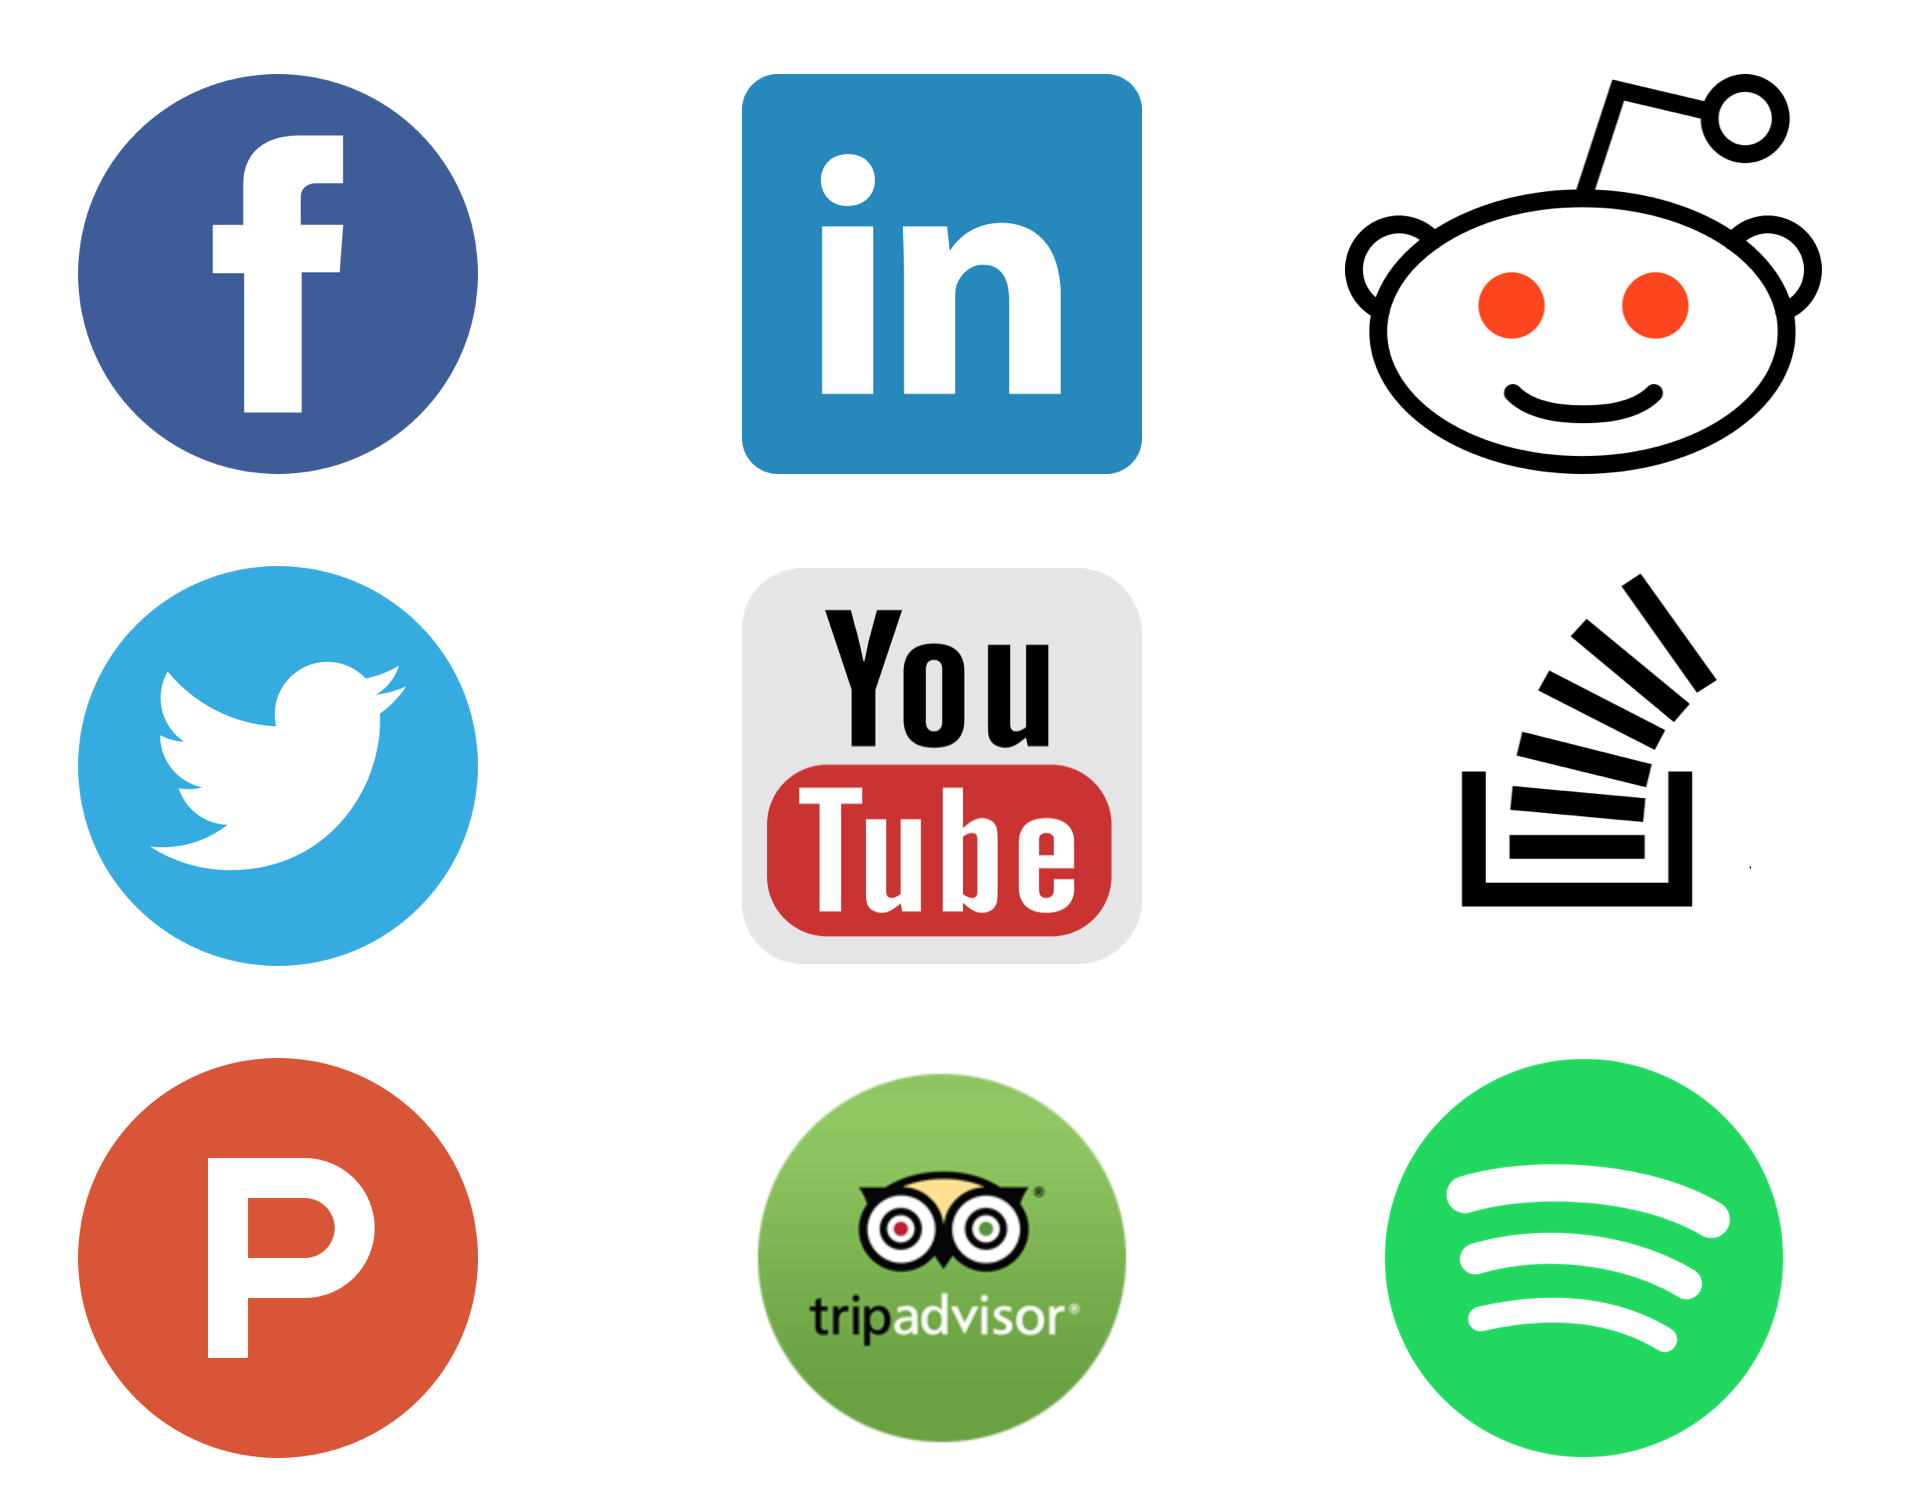 The logos of the social networks I posted my content on.